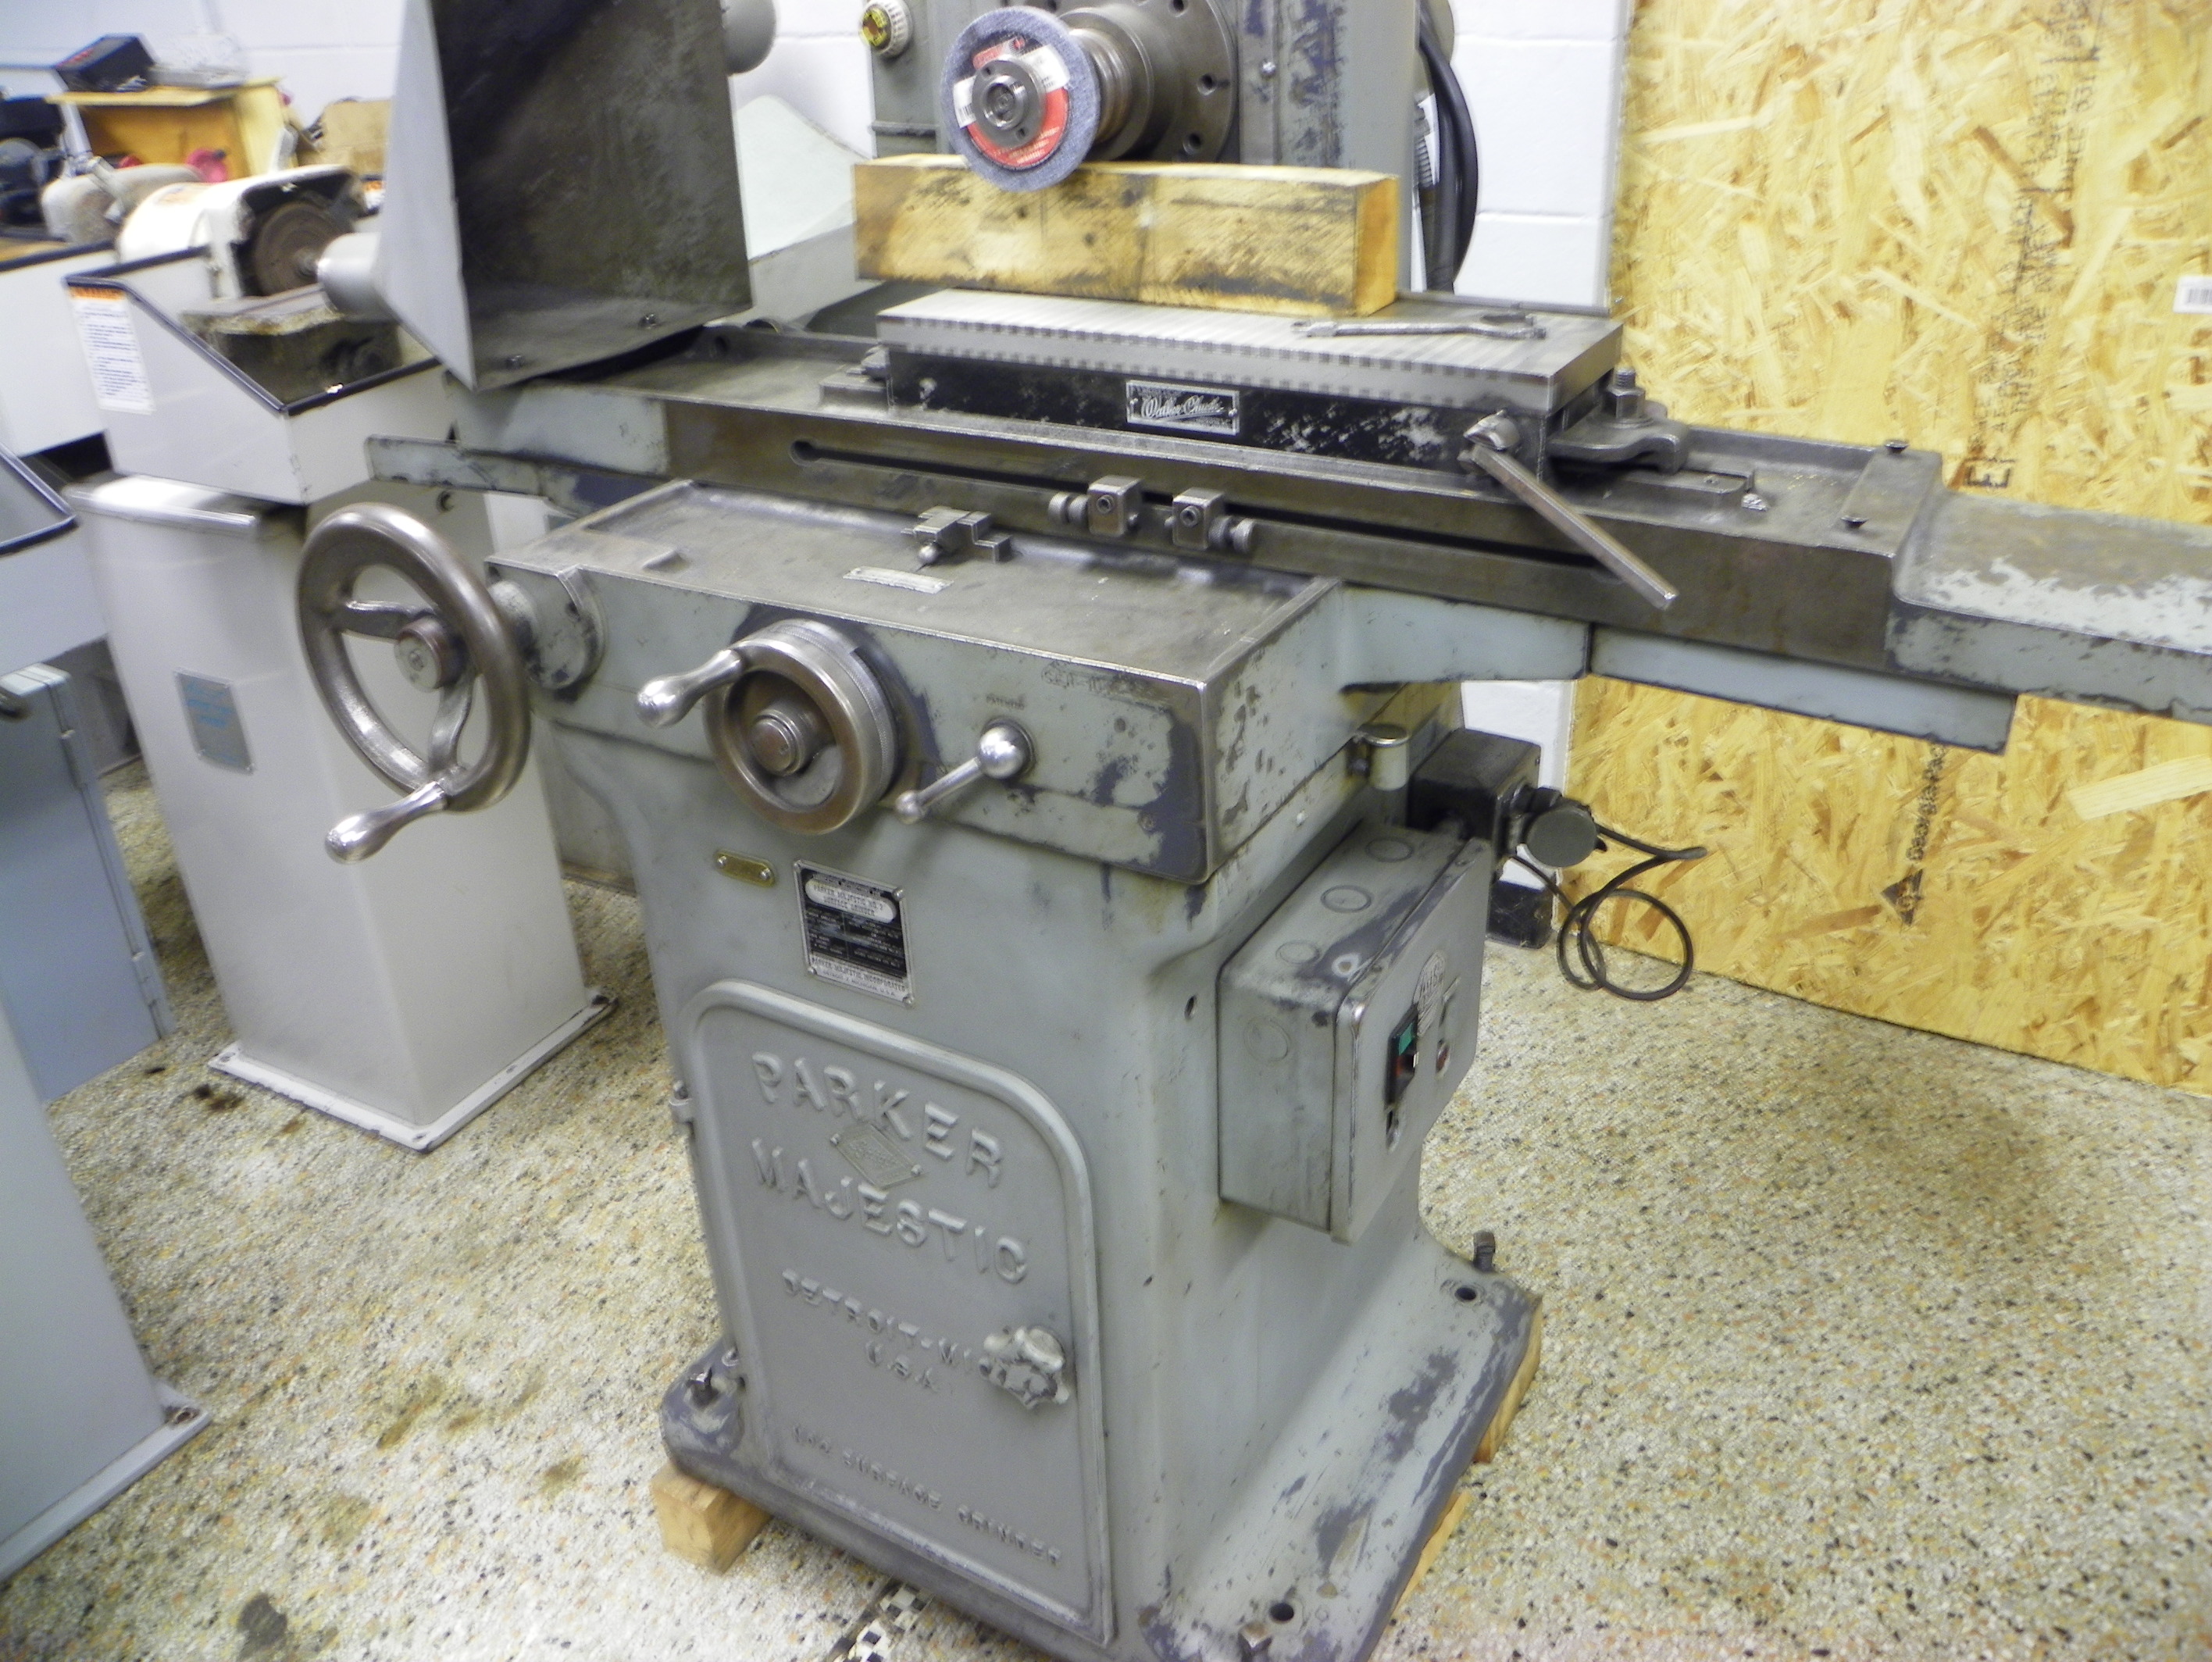 Parker-Majestic No. 2 Hand Feed Surface Grinder, S/N 1016-SC-57, New 1957.